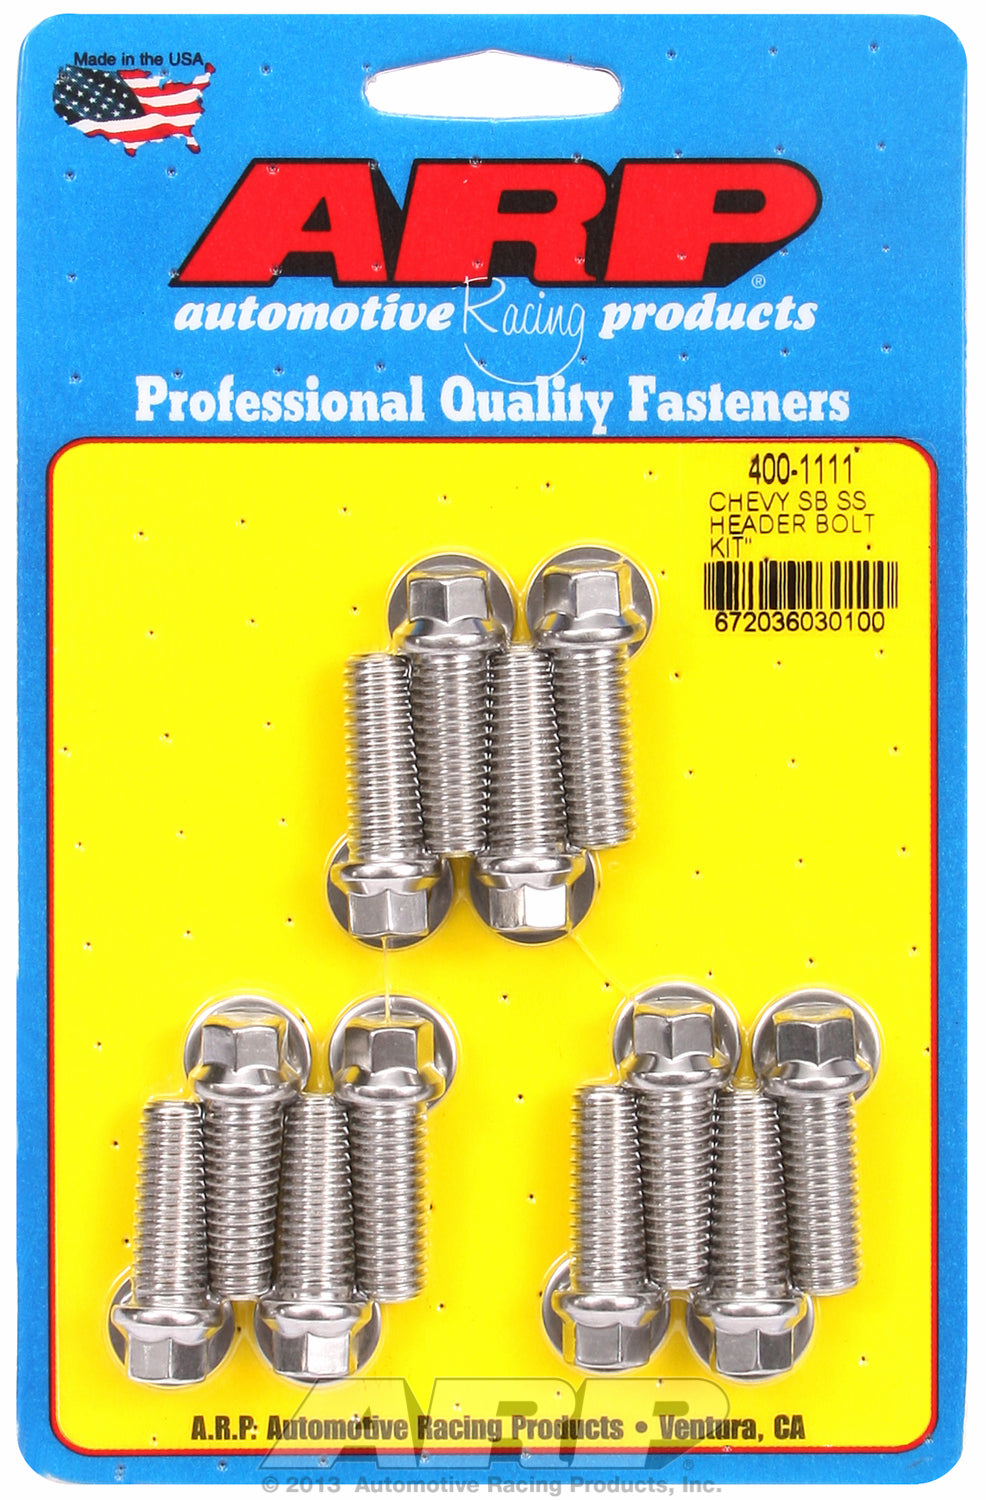 Header Bolt Kit For Chevrolet 3/8˝ dia. bolt, 3/8˝ wrench Stainless Hex Head